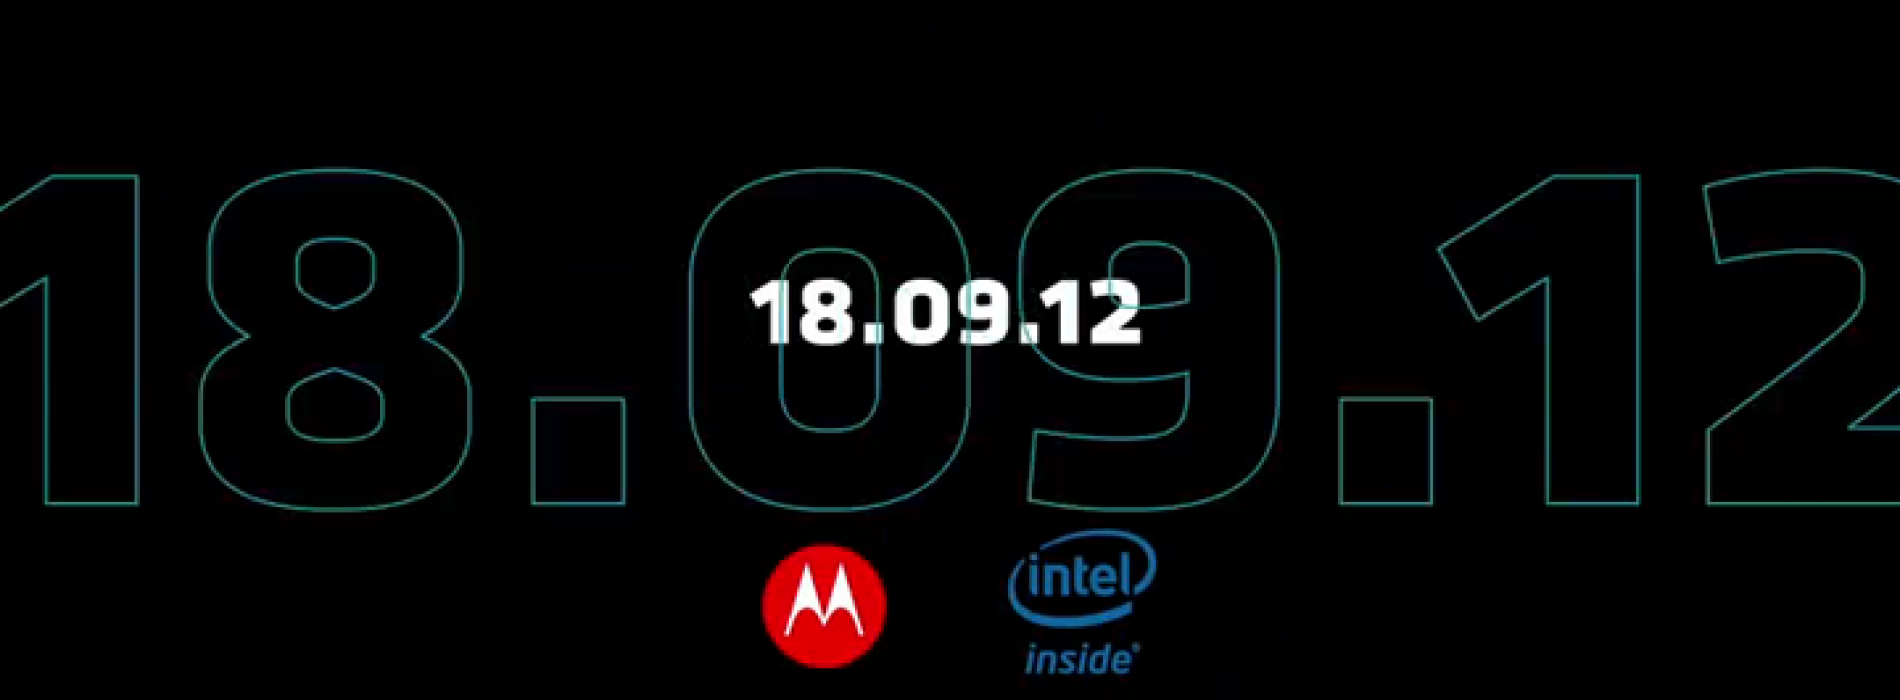 Motorola and Intel teasing September 18 event with short clip